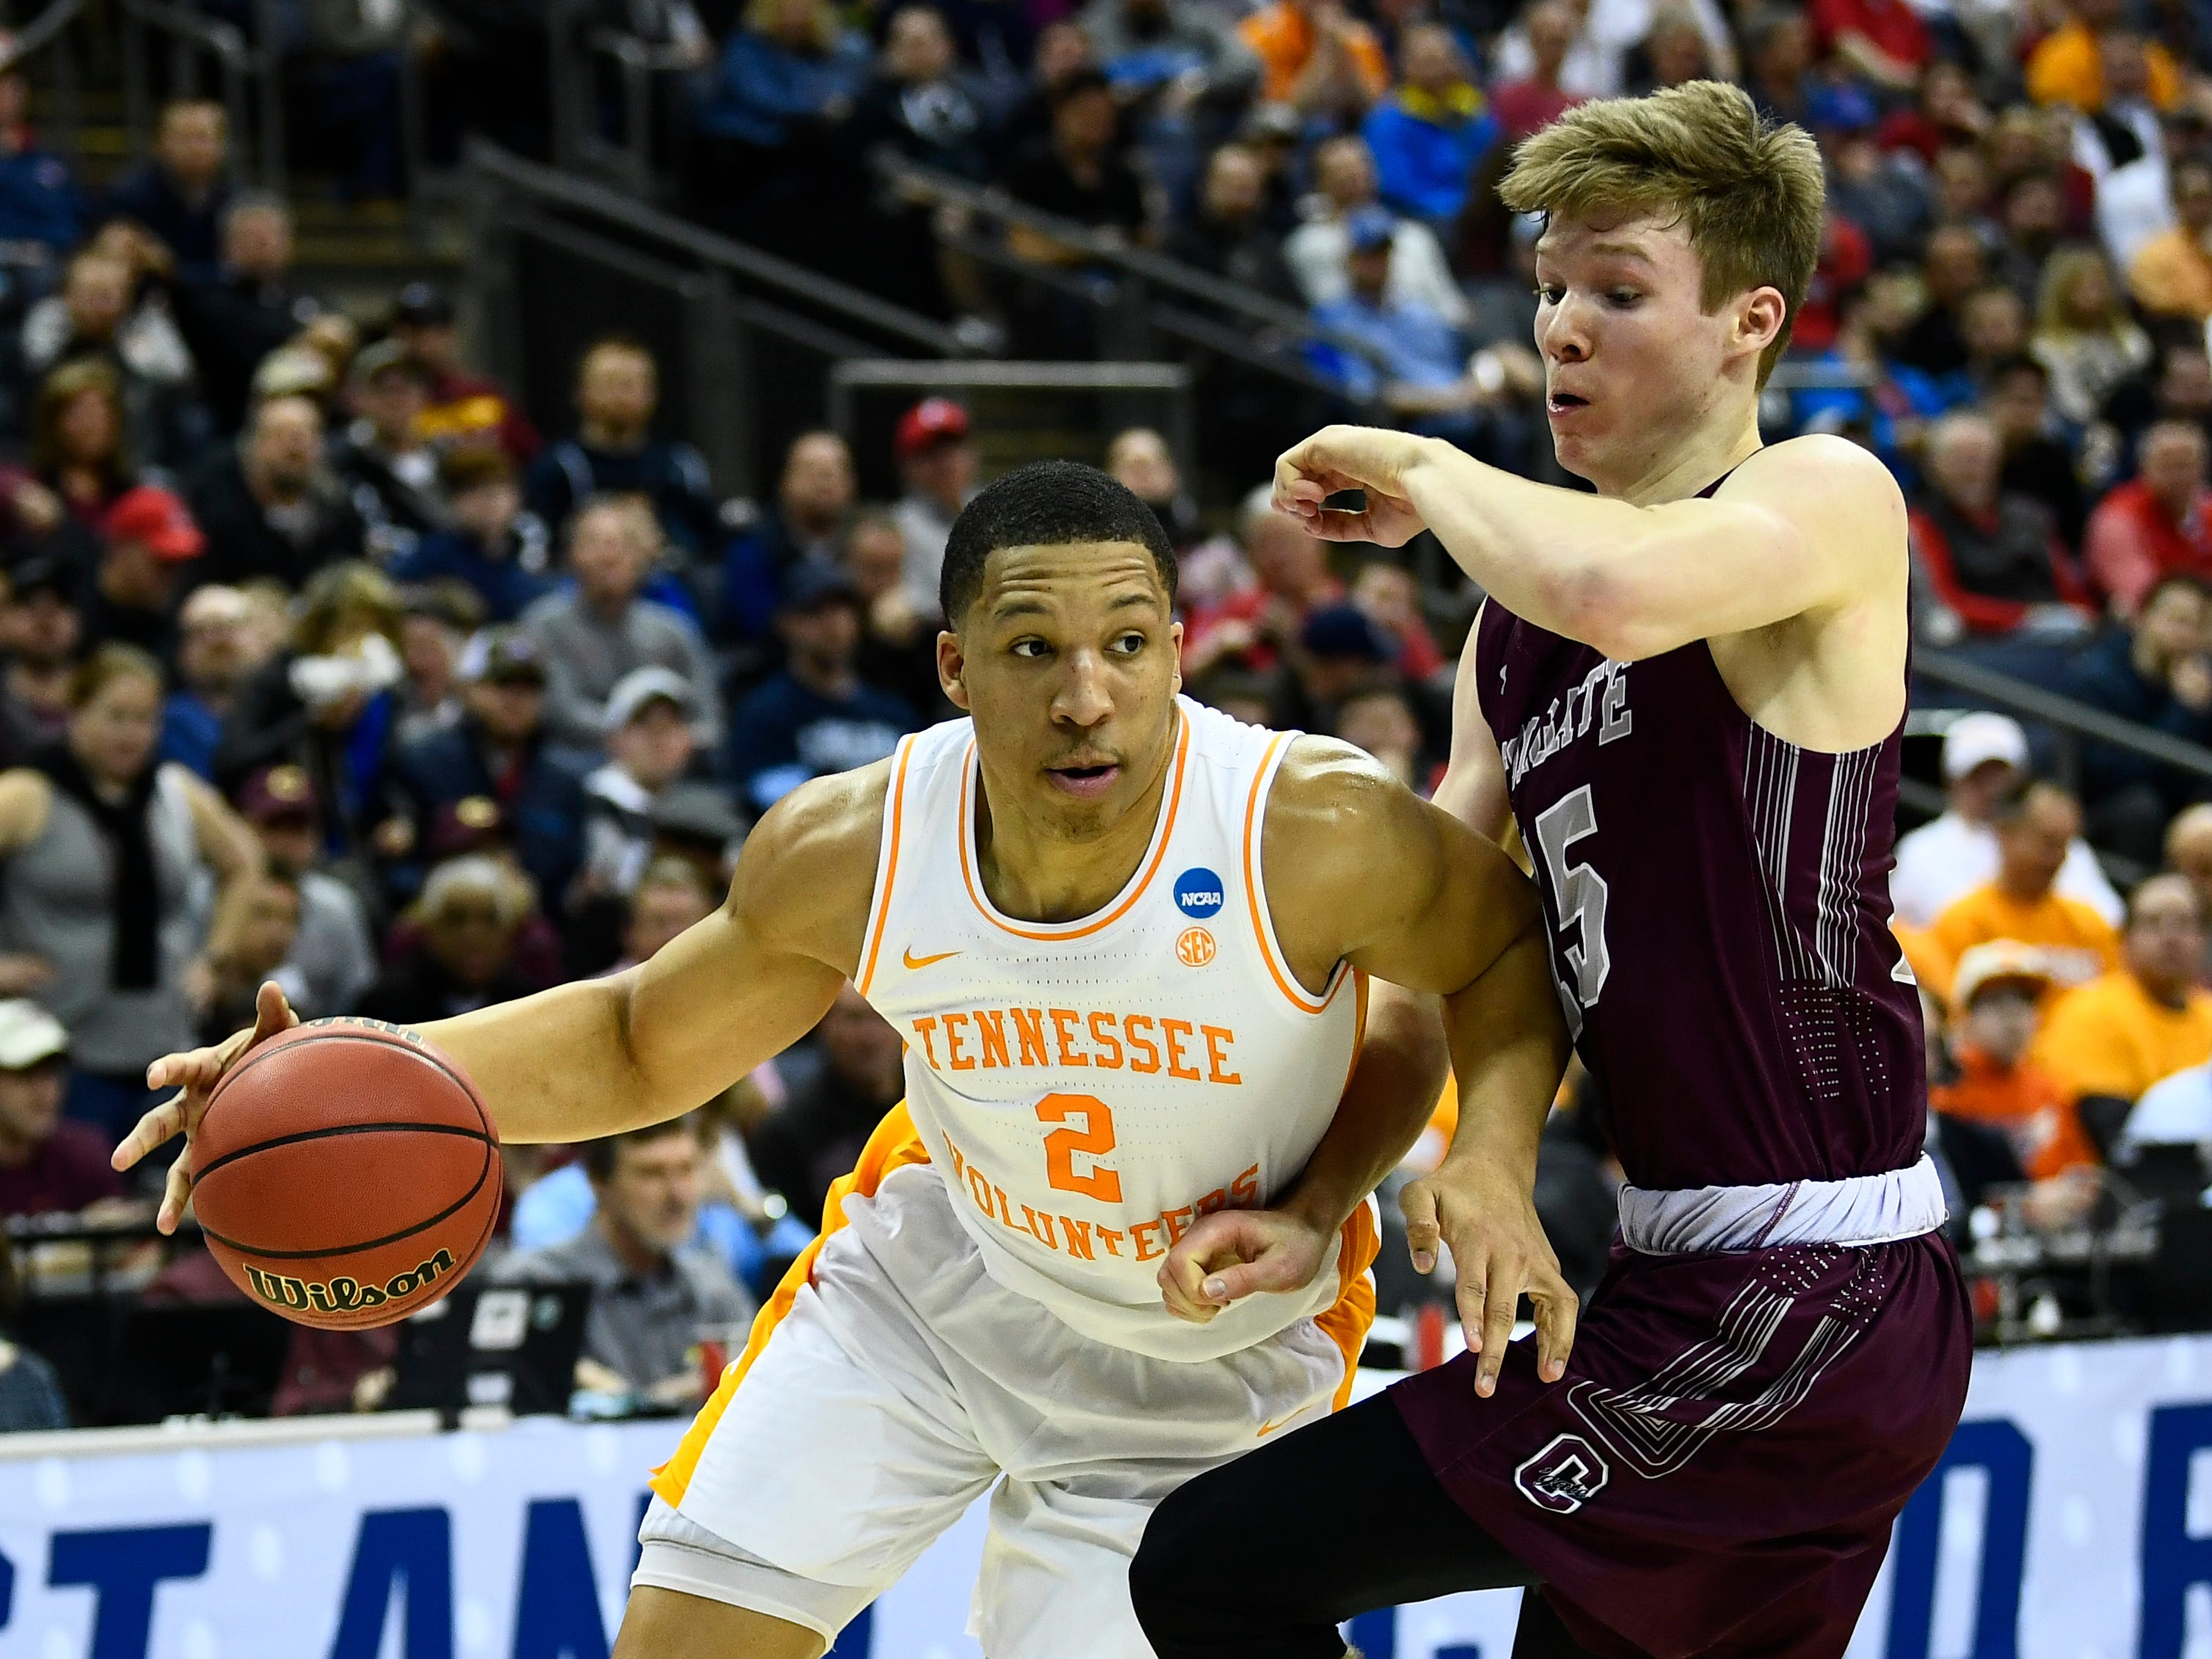 Tennessee forward Grant Williams (2) drives past Colgate guard Tucker Richardson (15) during the first round game of the NCAA Tournament at Nationwide Arena in Columbus, Ohio, on Friday, March 22, 2019.